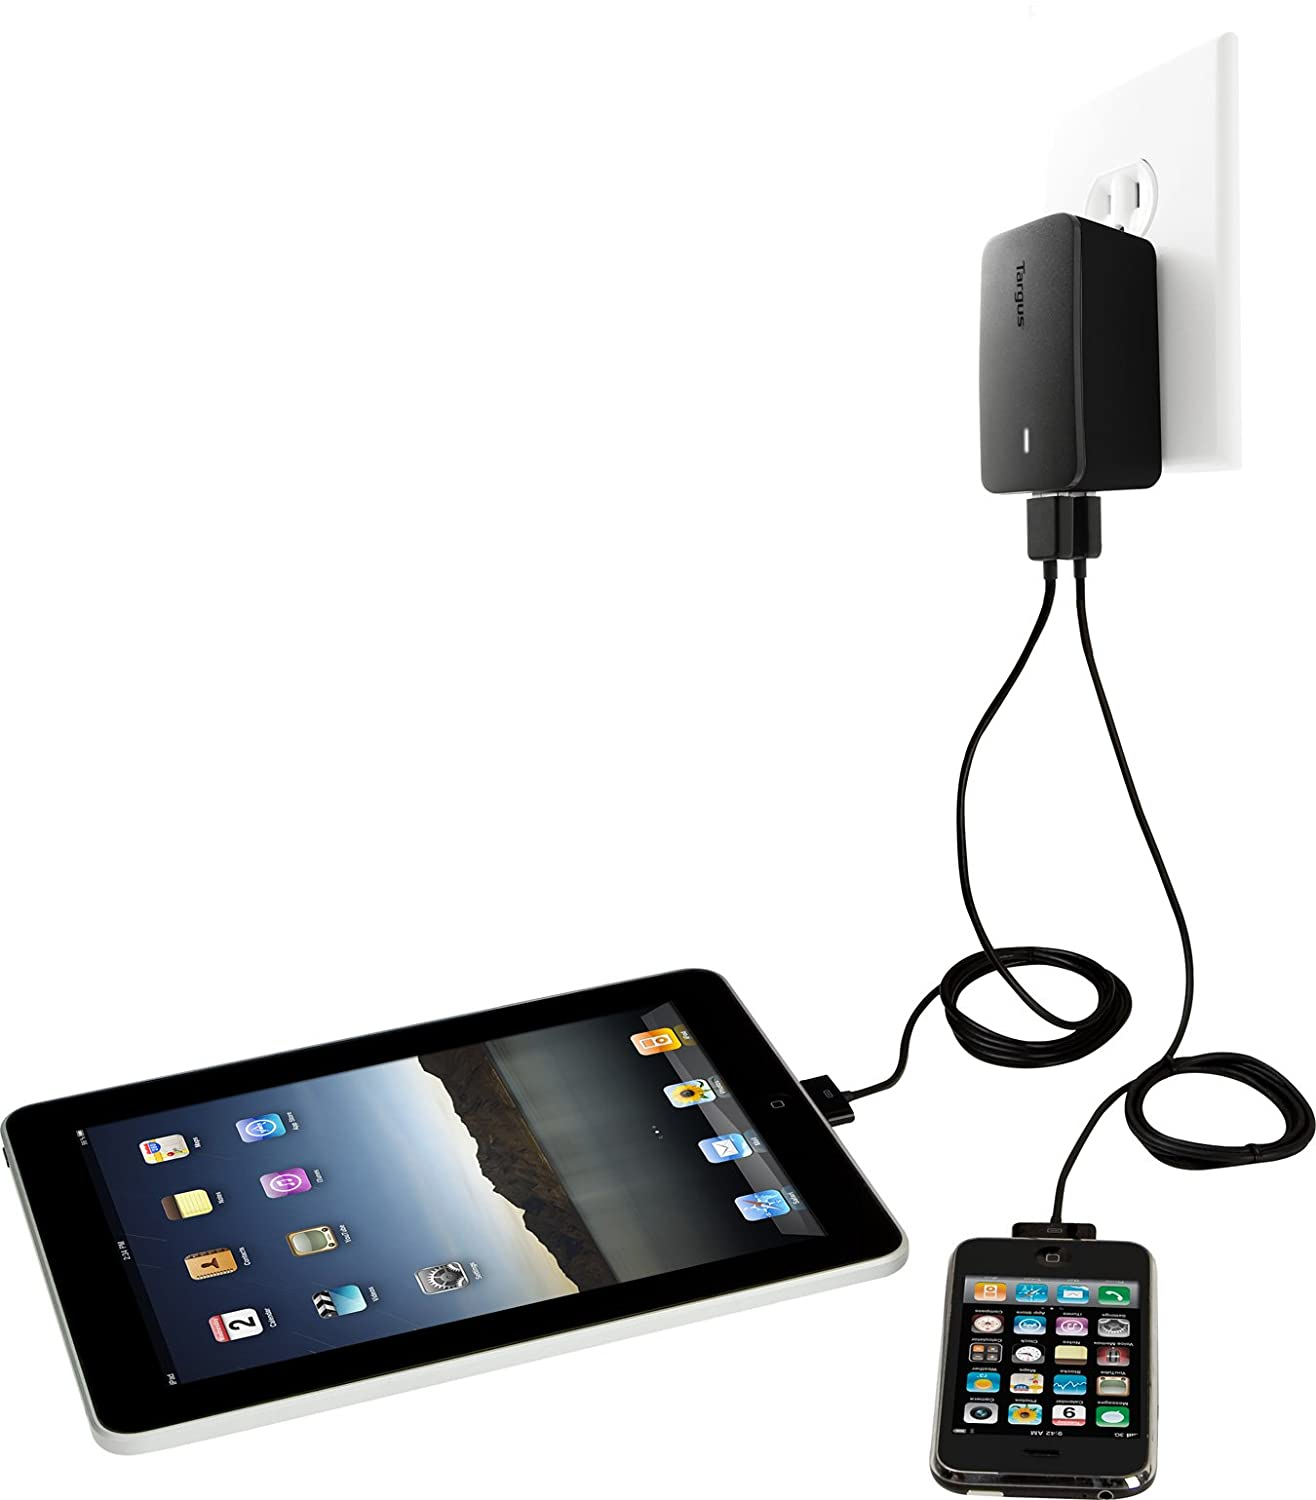 Amazon.com: Targus Dual Cargador para Apple iPad, iPad 2 ...